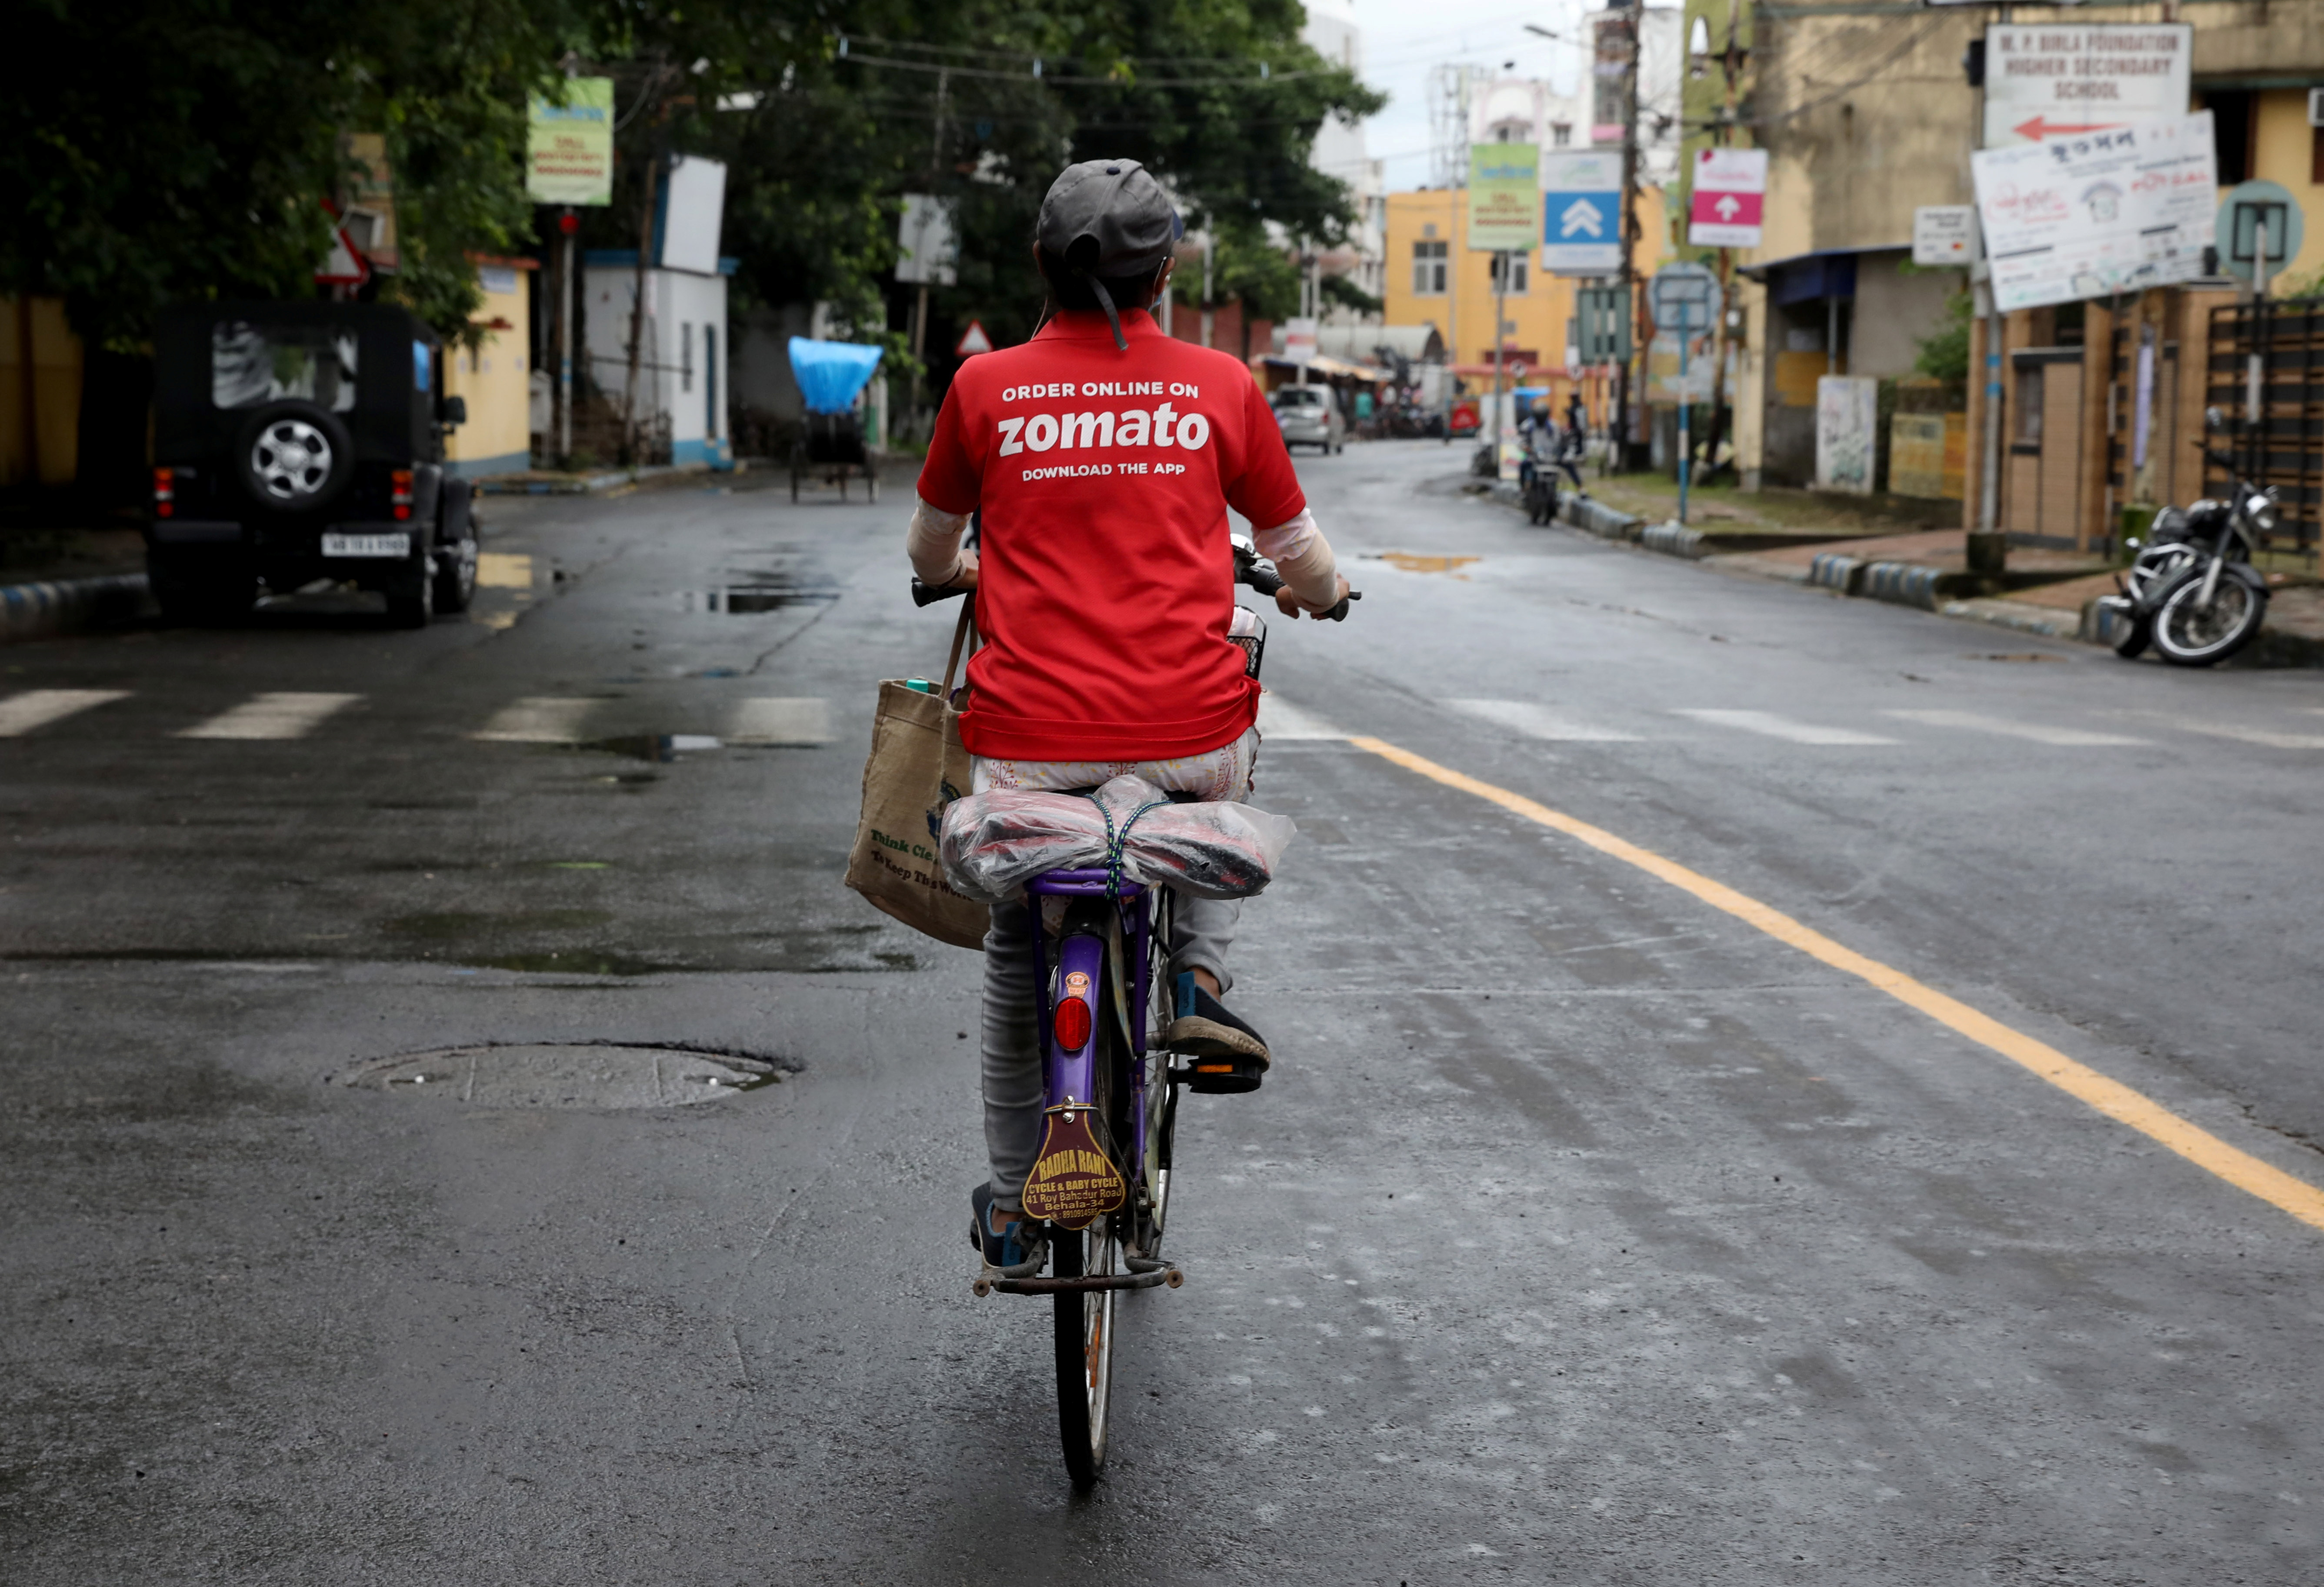 A delivery worker of Zomato, an Indian food-delivery startup, rides her bicycle along a road in Kolkata, India, July 13, 2021.